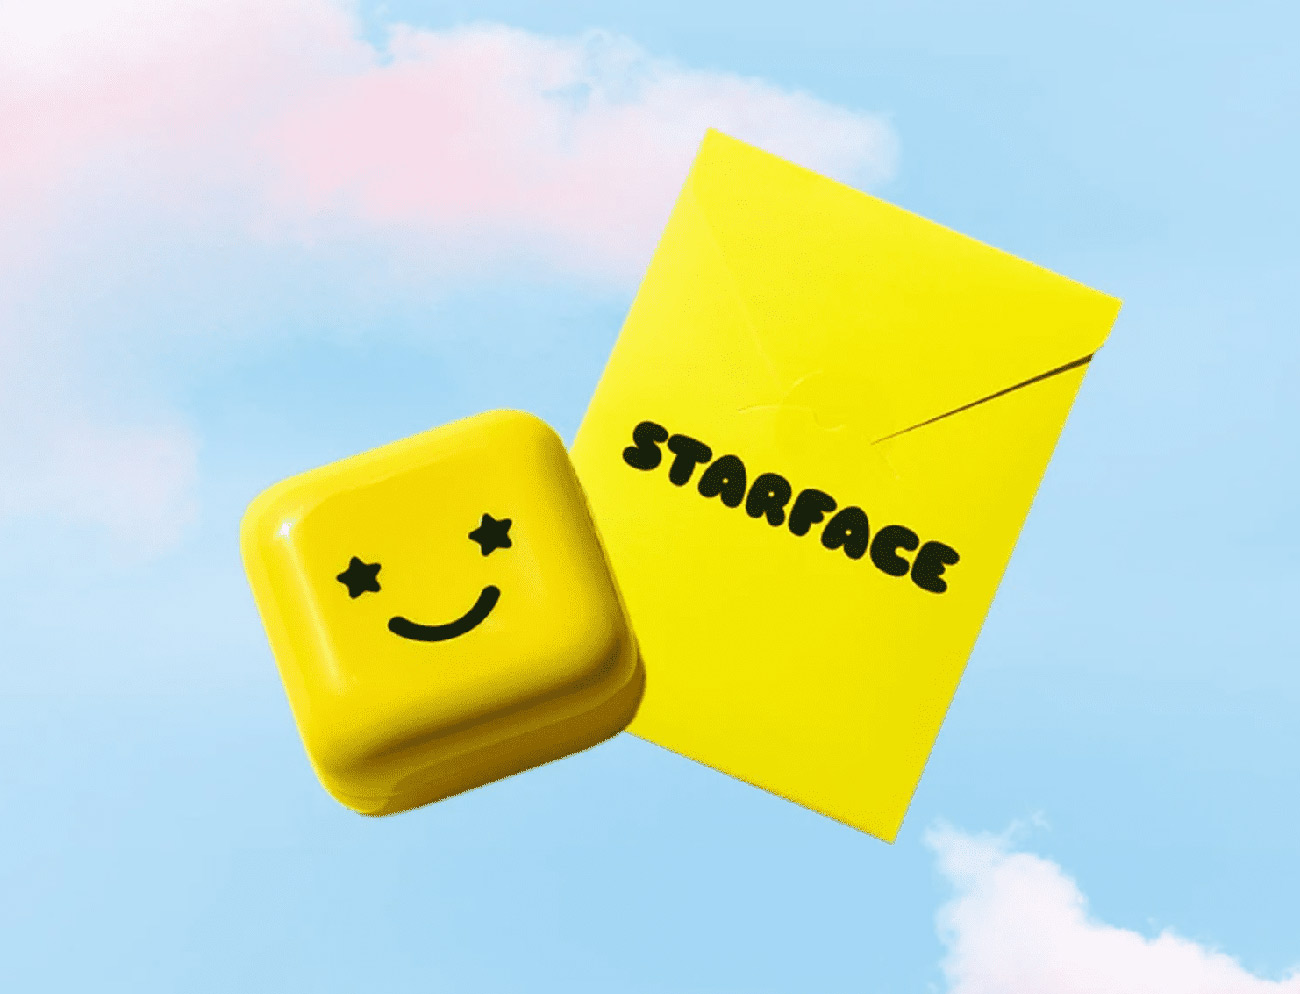 Starface Hydro-stars - star pimple patches